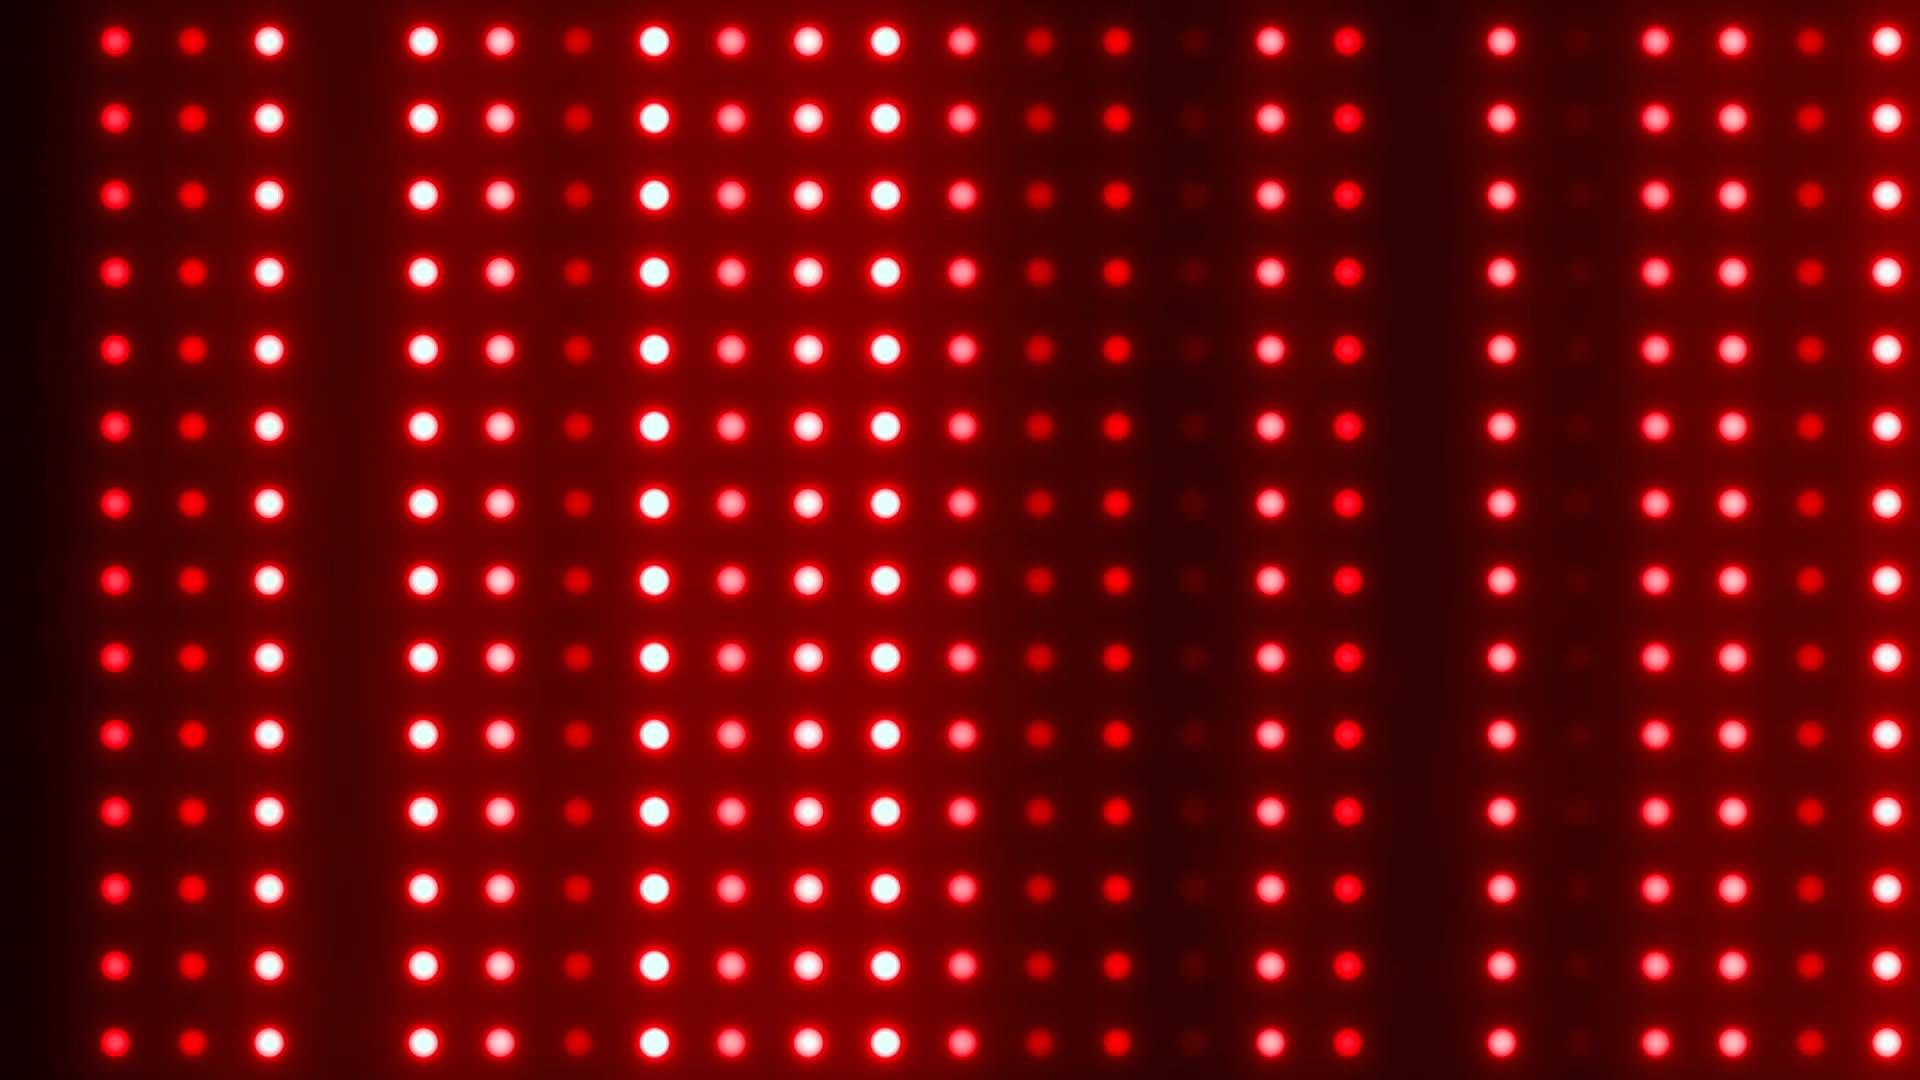 Pin by Jonathan Reis on Textura (*u*) | Pinterest for Red Led Light Texture  181pct